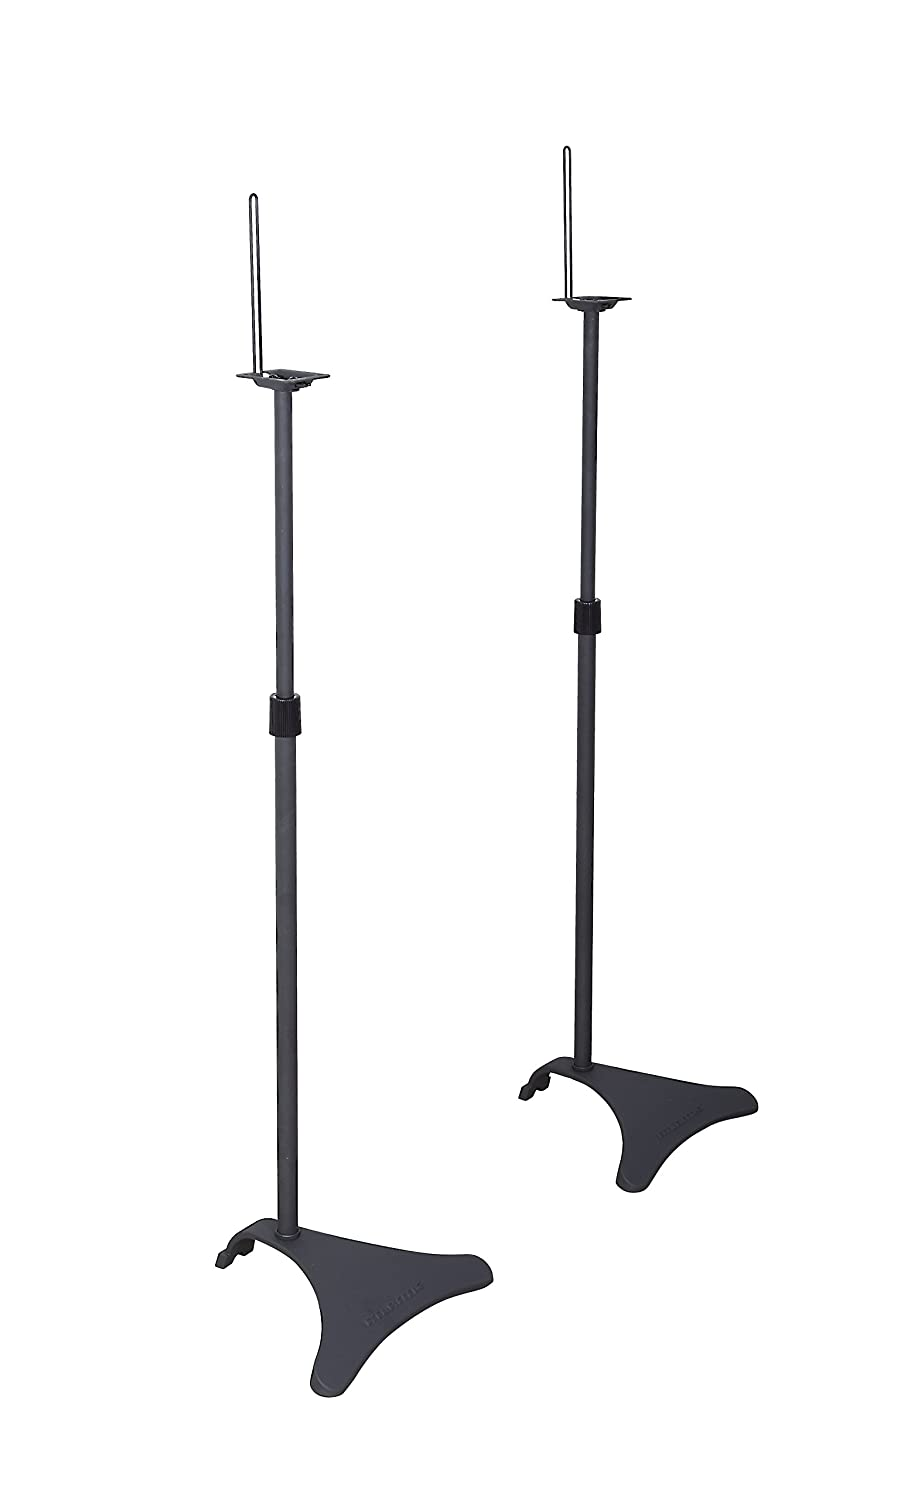 Atlantic Satellite 77305018 2 Speaker Stands Review